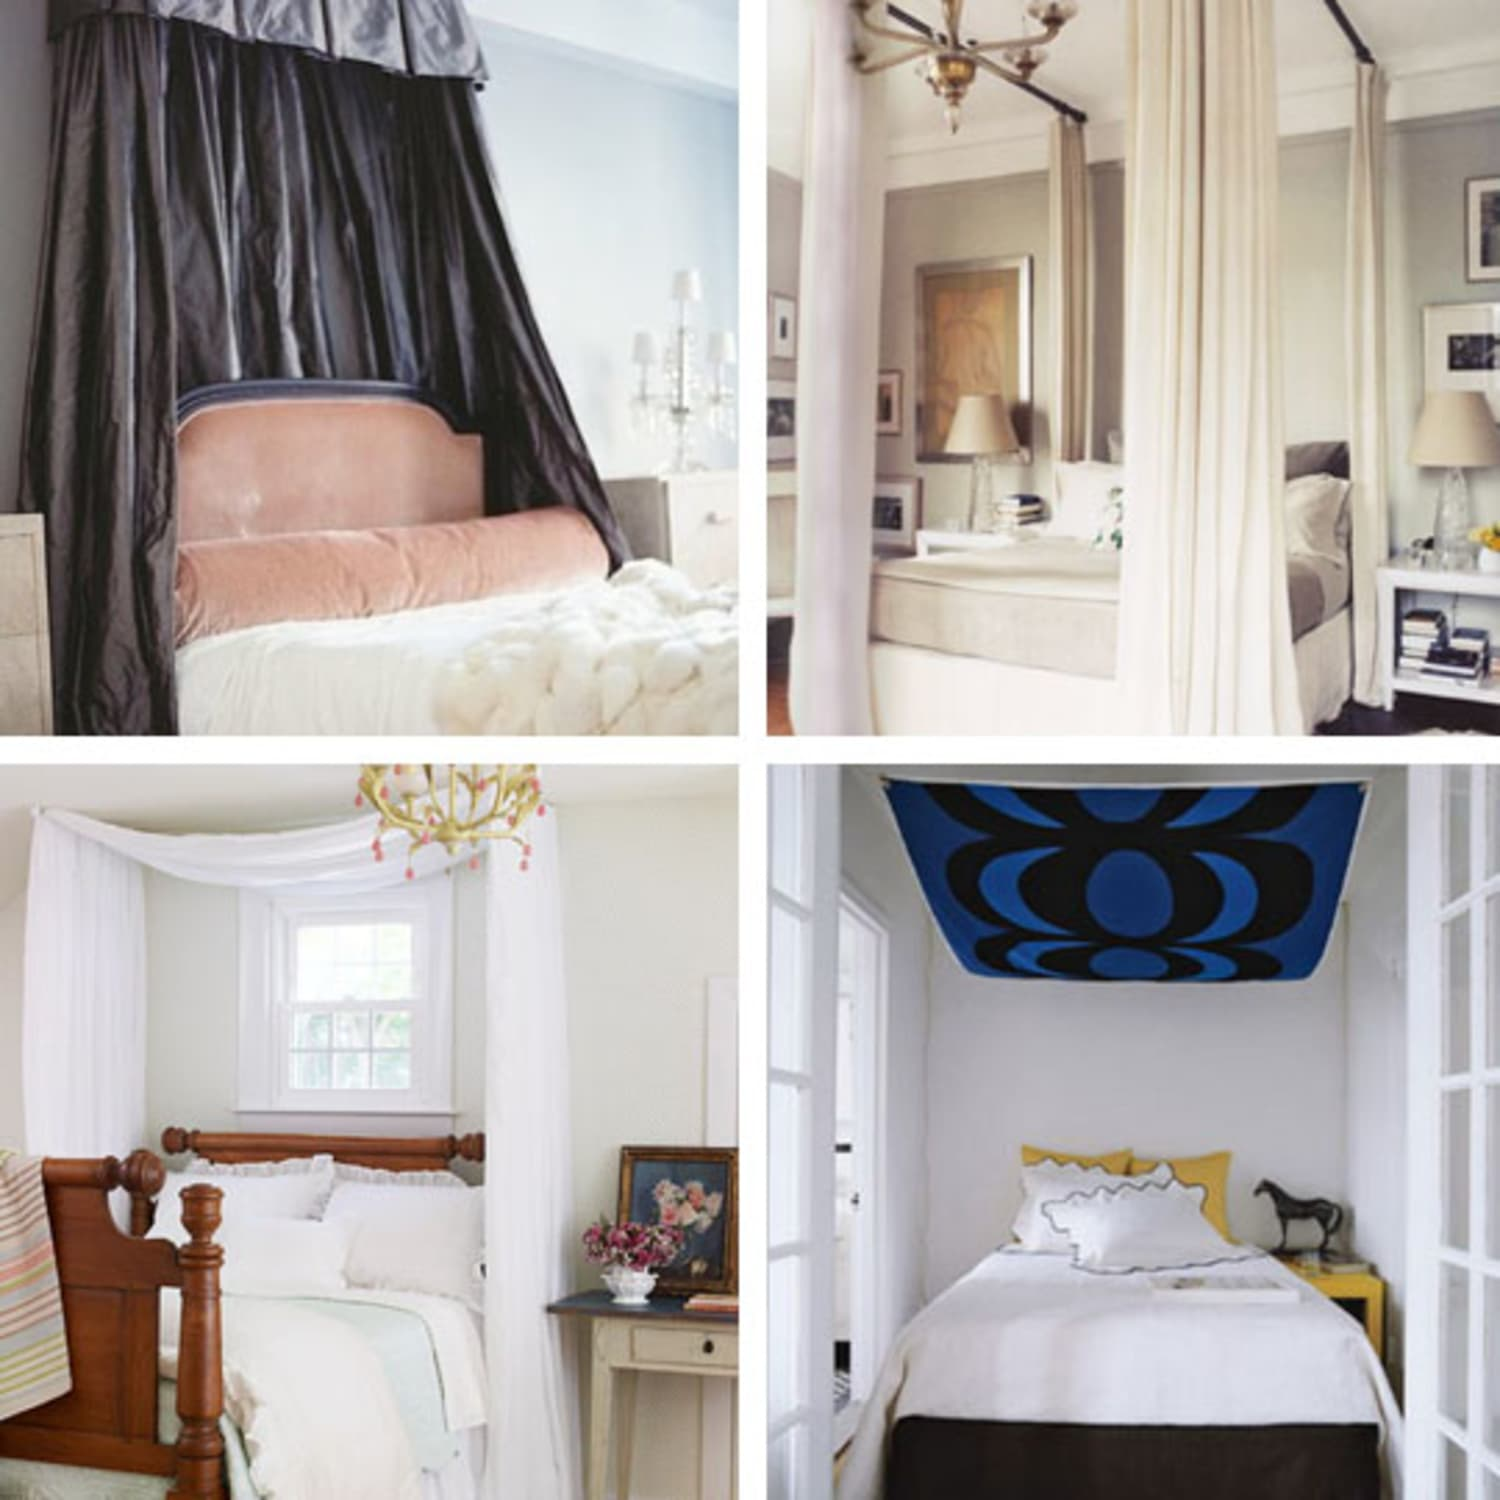 Diy Ideas For Getting The Look Of A Canopy Bed Without Buying A New Bed Apartment Therapy